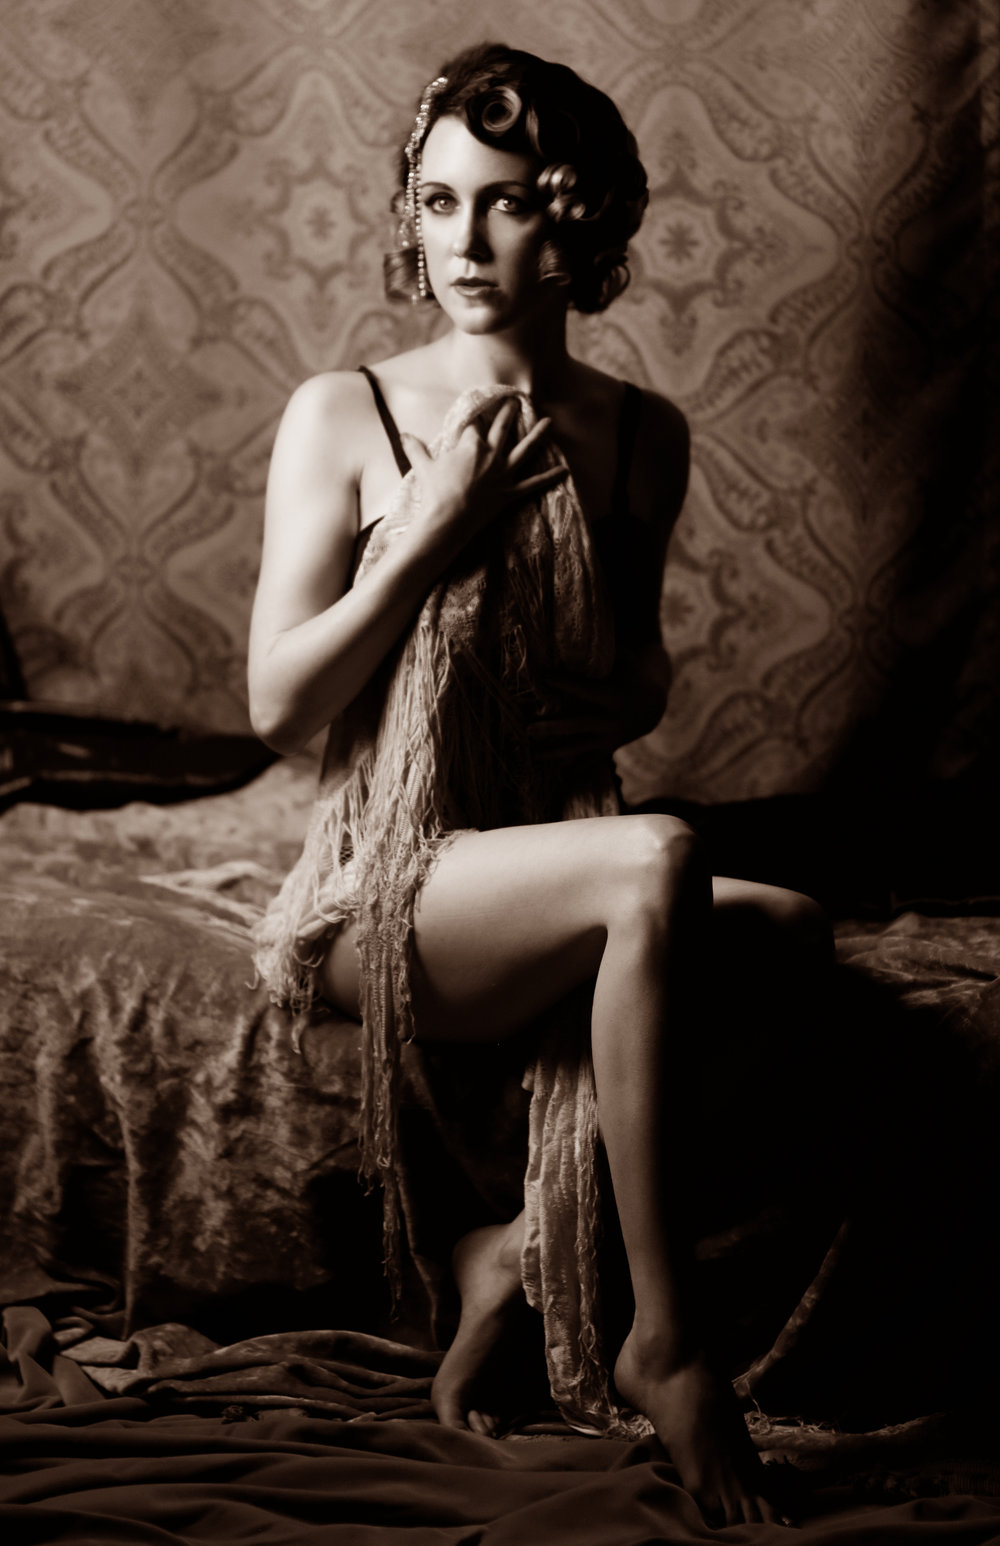 Vintage Photographer Denver 1920s Style by La Photographie 10.jpg